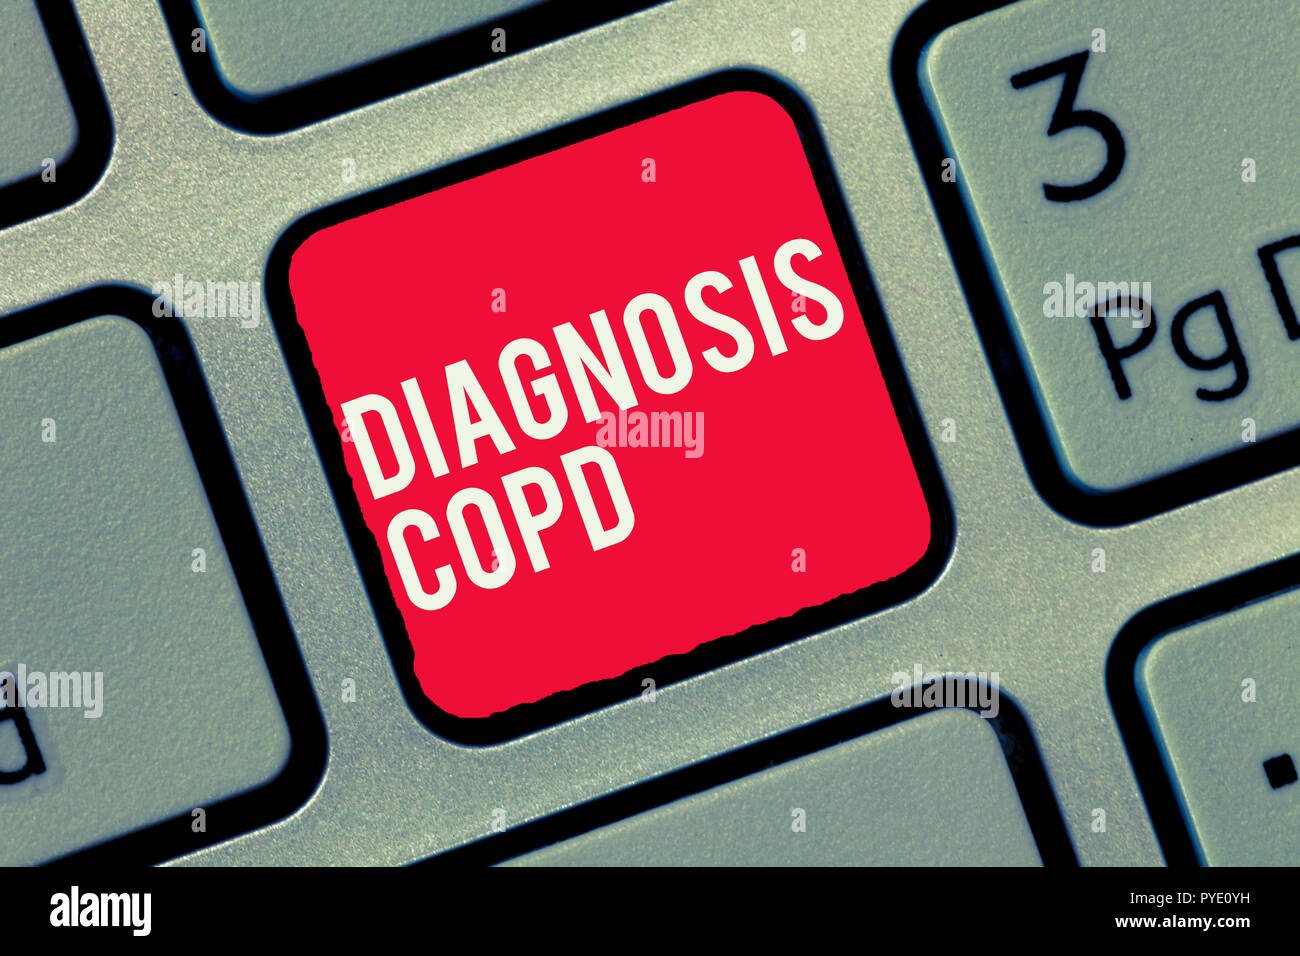 Word writing text Diagnosis Copd. Business concept for obstruction of lung airflow that hinders with breathing. - Stock Image